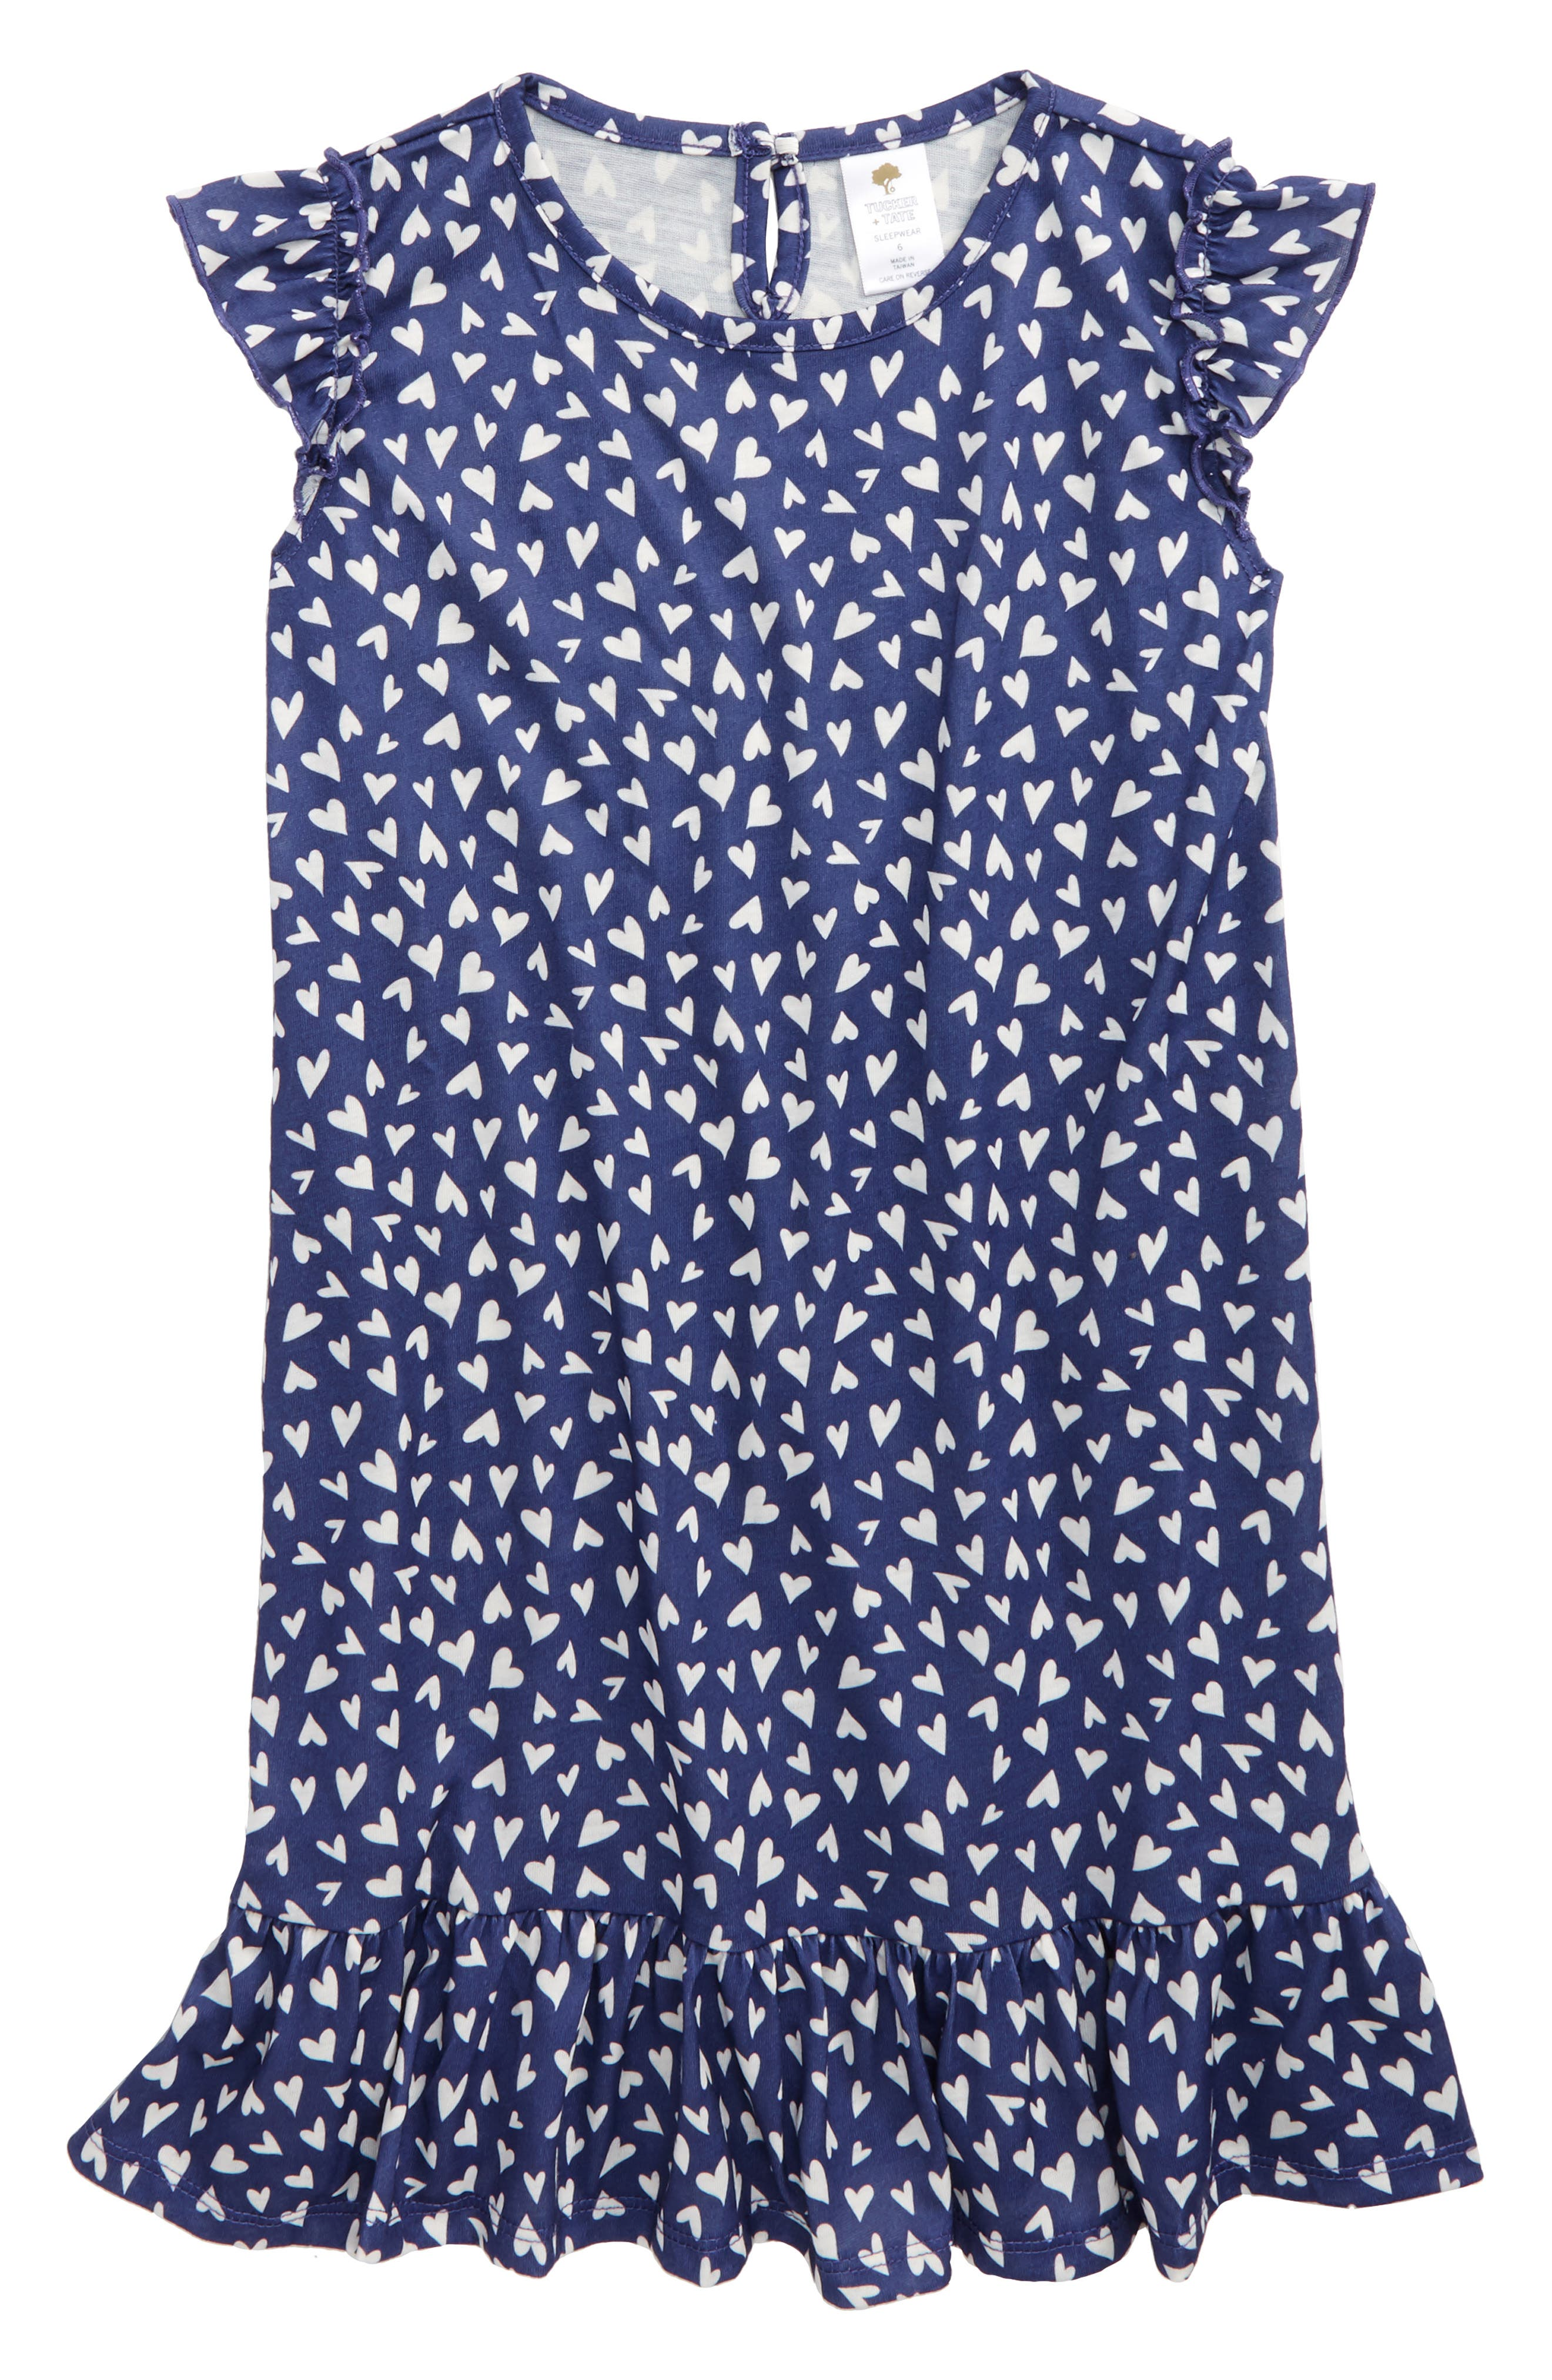 Ruffle Nightgown,                         Main,                         color, Navy Skipper Tossed Hearts